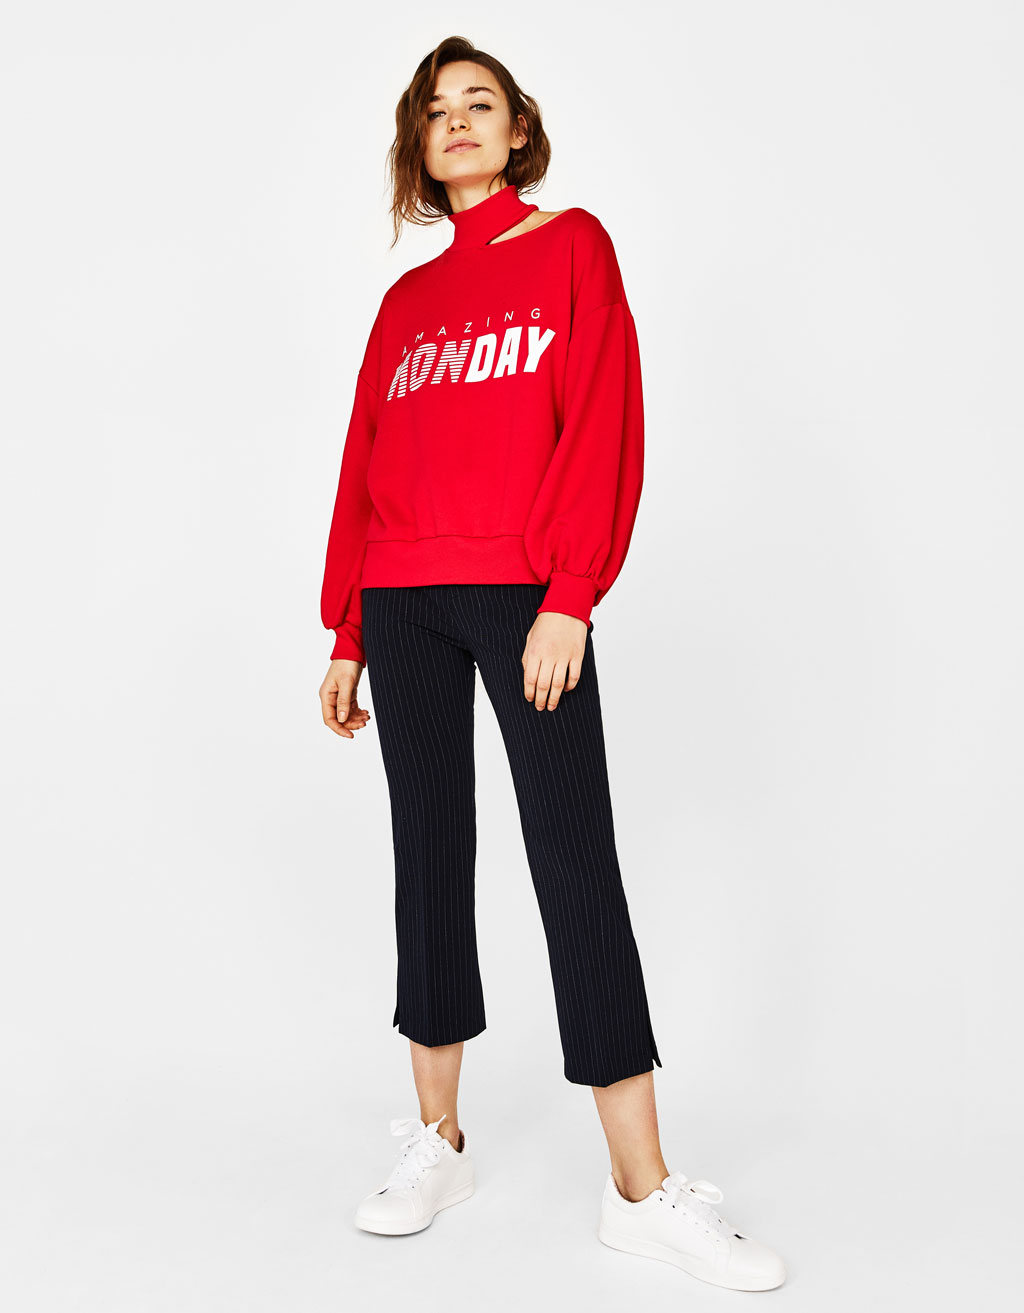 Cut out sweatshirt with slogan